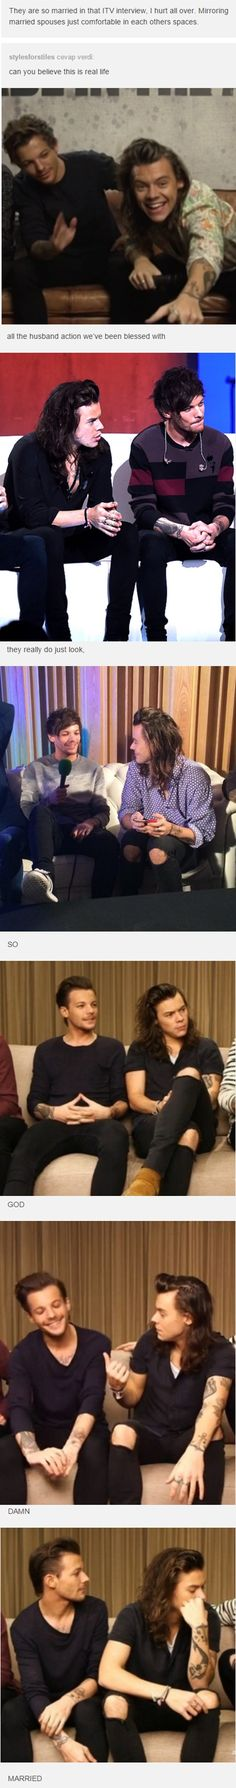 WOAH... WHAT IF LARRY JUST LIKE GOT SECRETLY MARRIED BEHIND EVERYONE'S BACKS AND ARE JUST LIKE TOGETHER FOREVER!!!!!